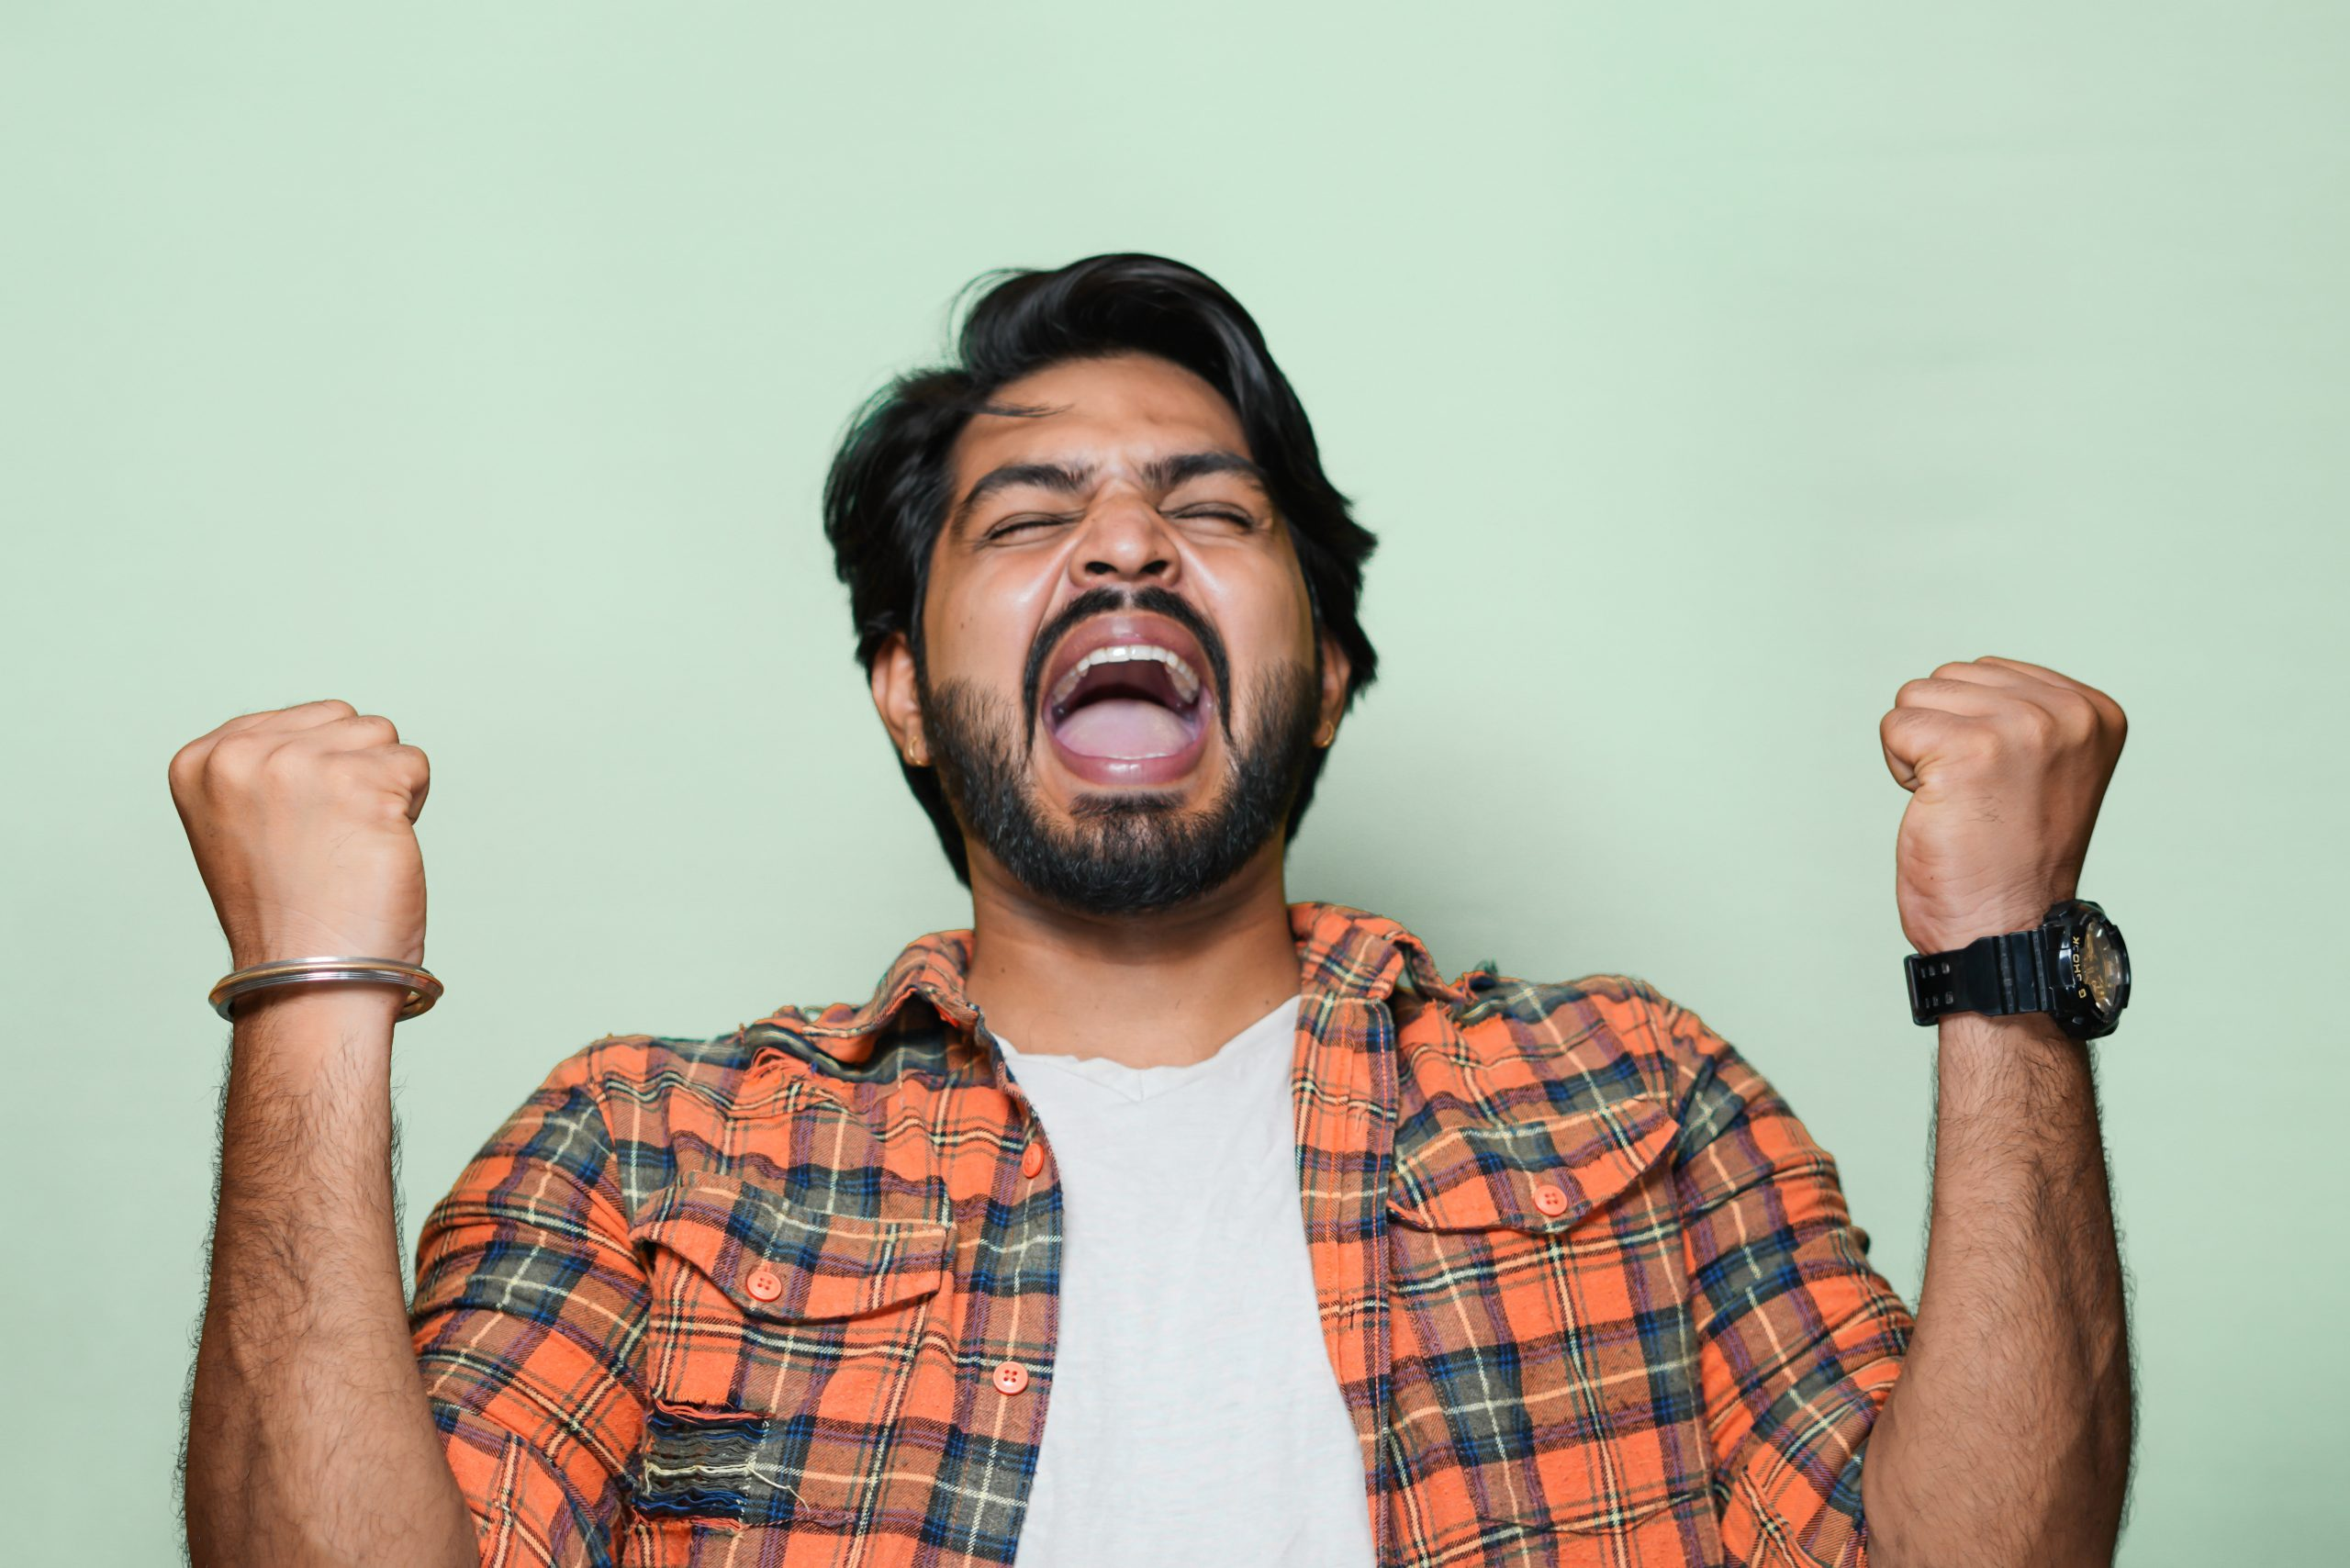 Man look so happy - Free Image by Sukh Photography on PixaHive.com